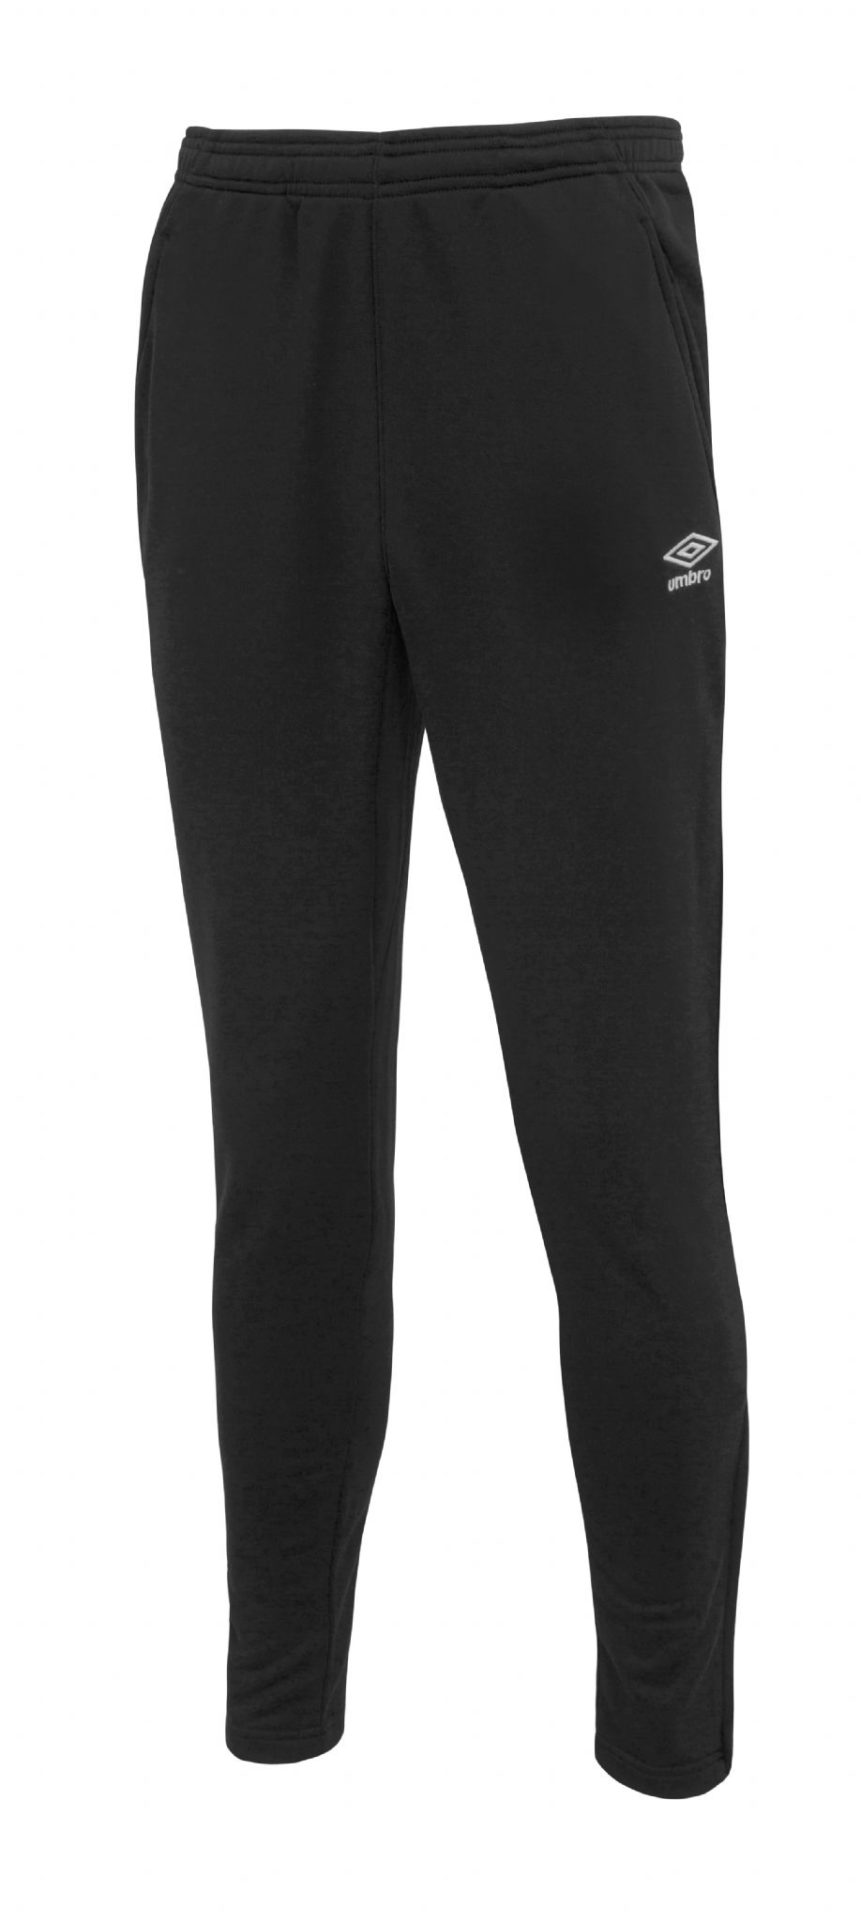 umbro skinny pants black 30533 p scaled